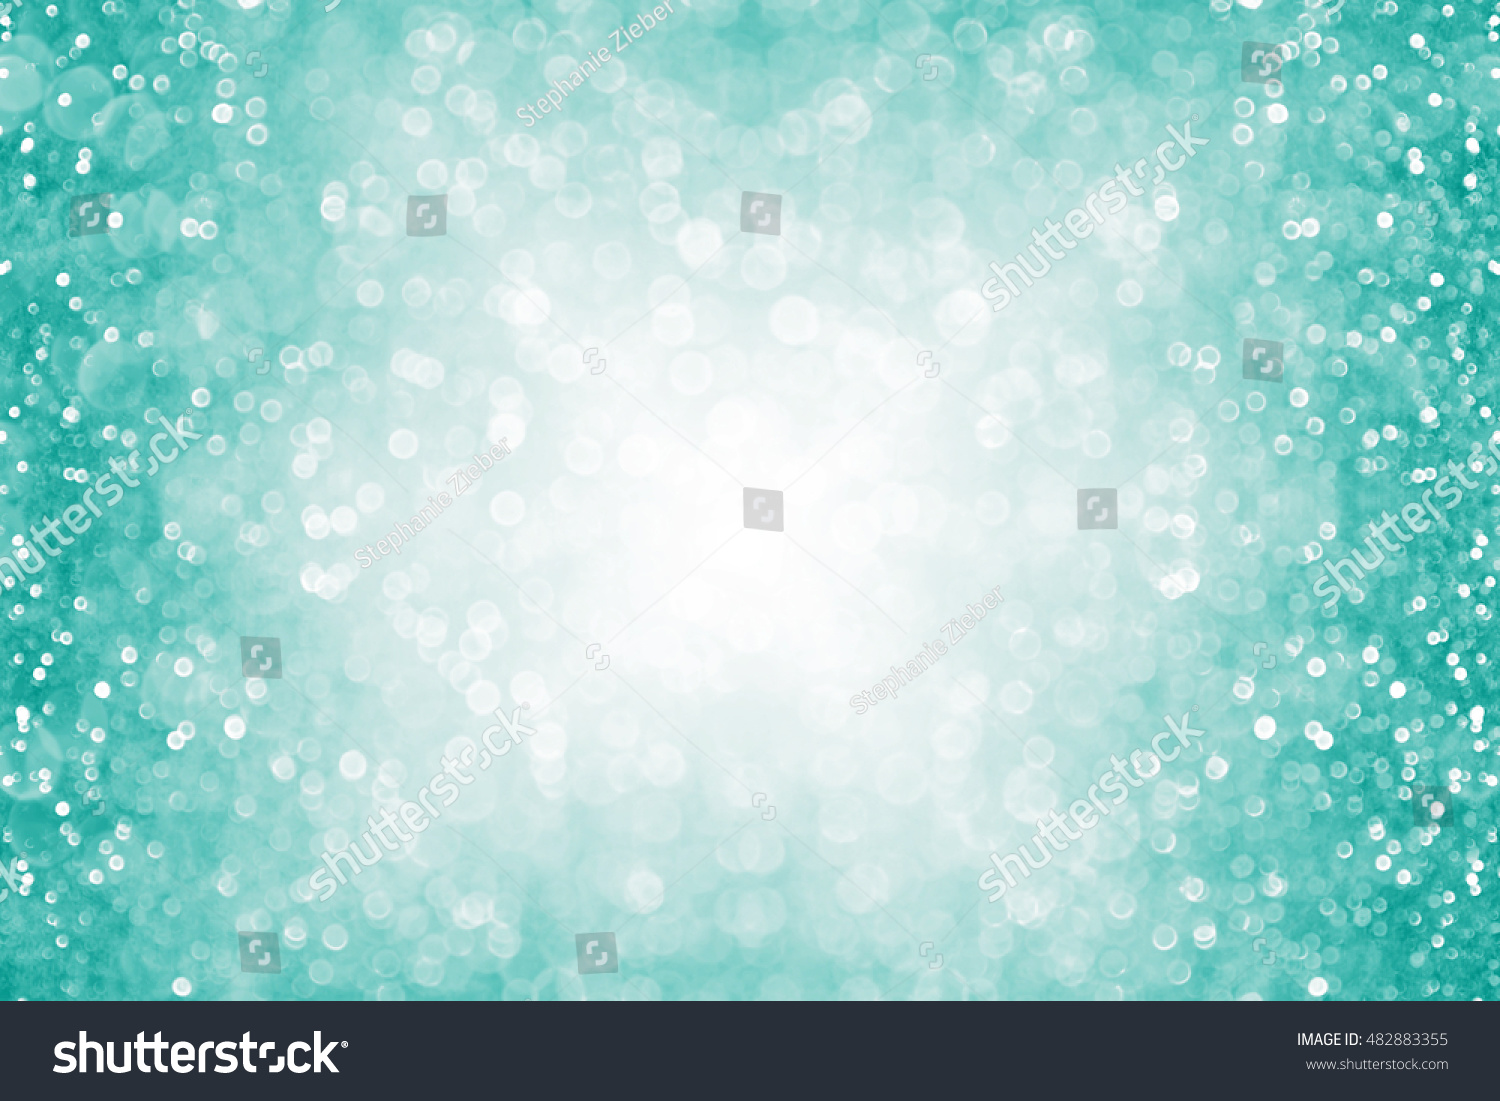 abstract teal green turquoise aqua glitter stock photo